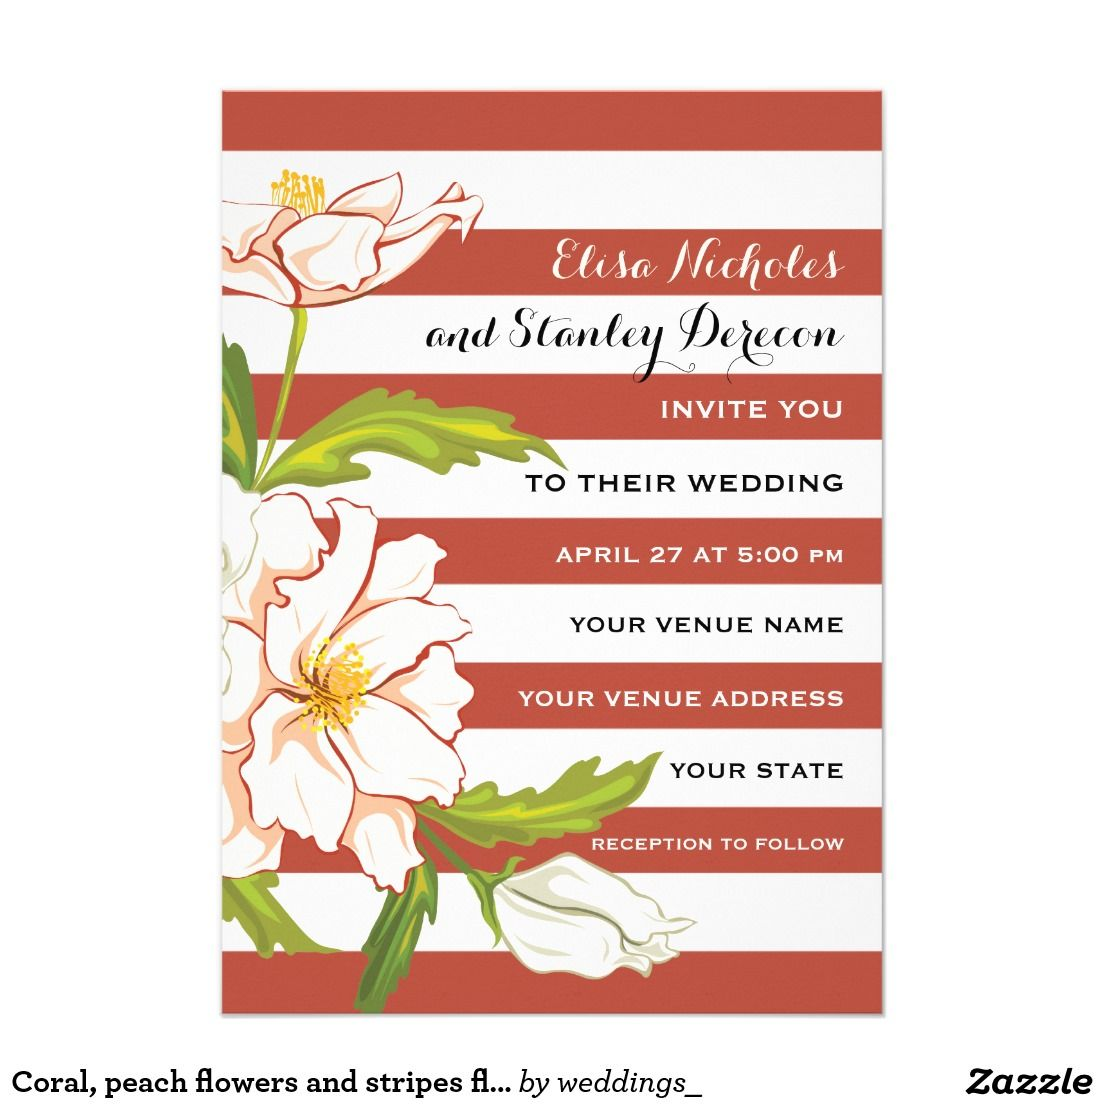 Old Fashioned Addressing Wedding Invitation Etiquette Collection ...